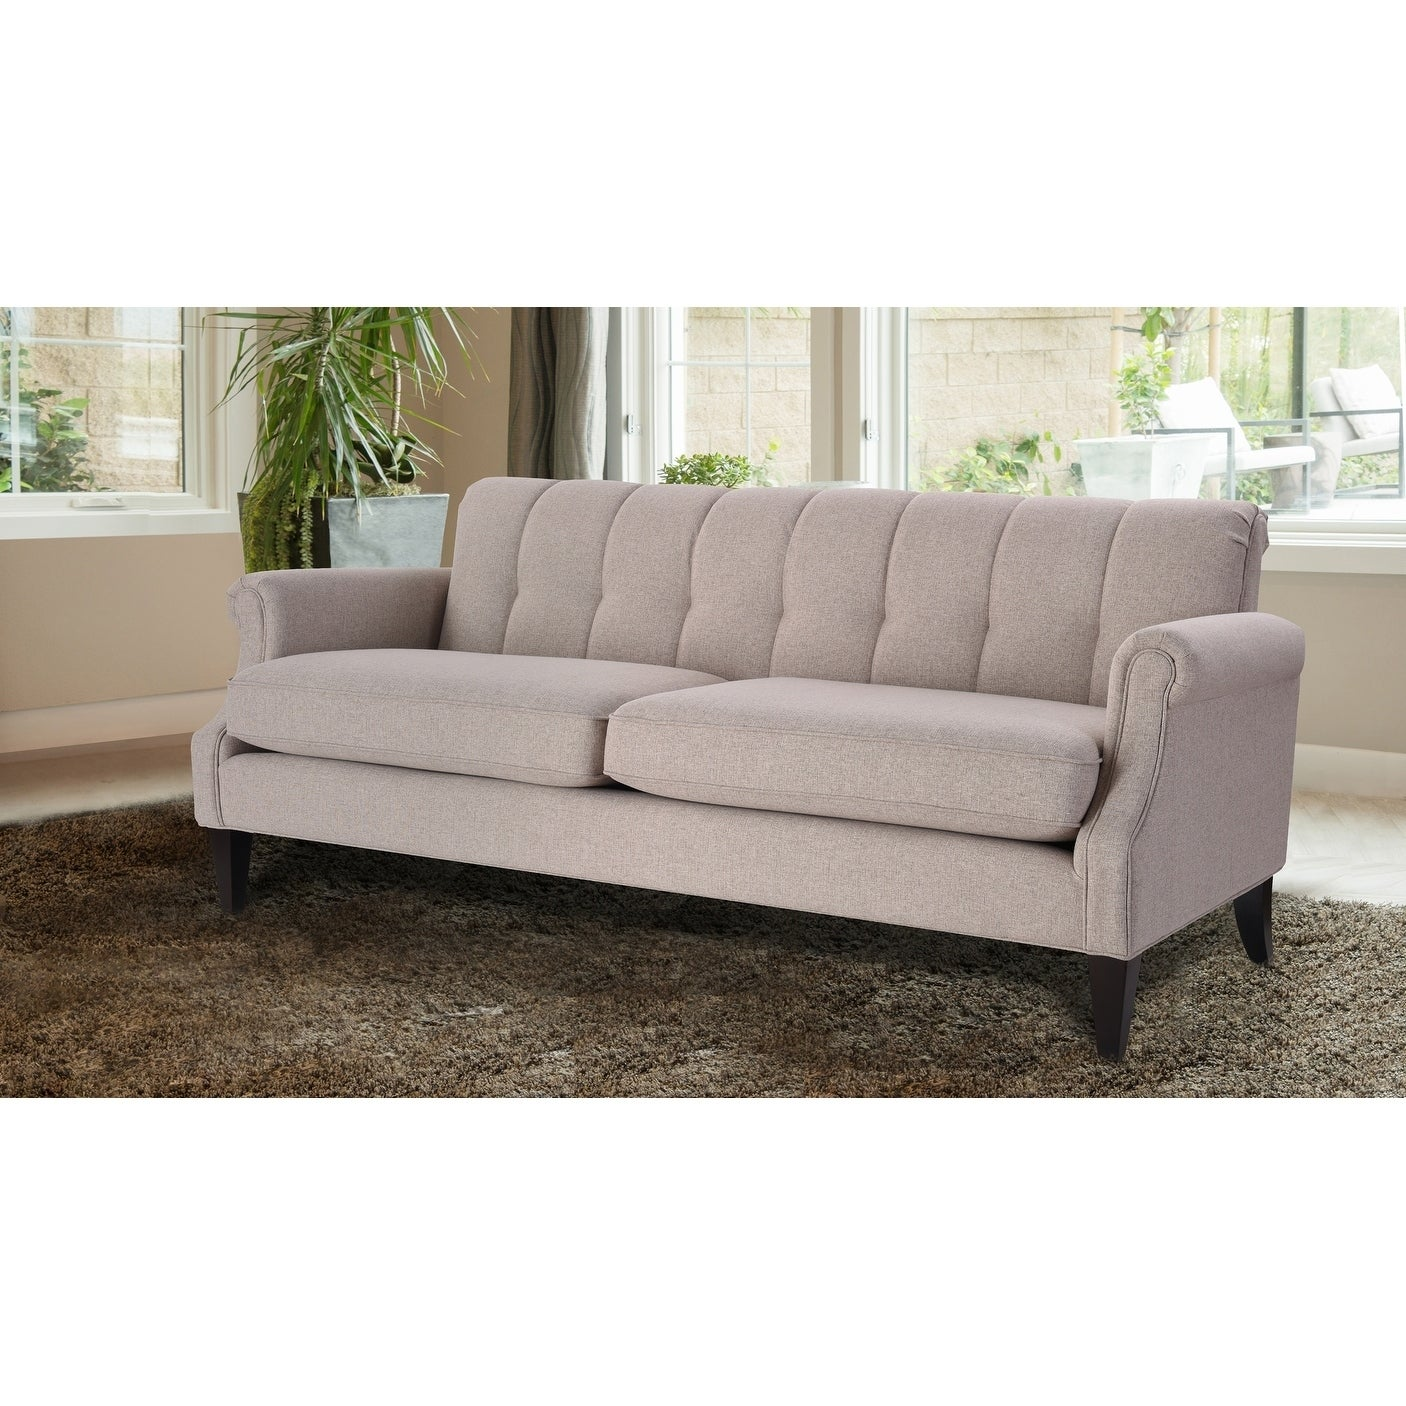 Jennifer Taylor Giotto Channel Tufted Roll Arm Sofa Free Shipping Today 22123706